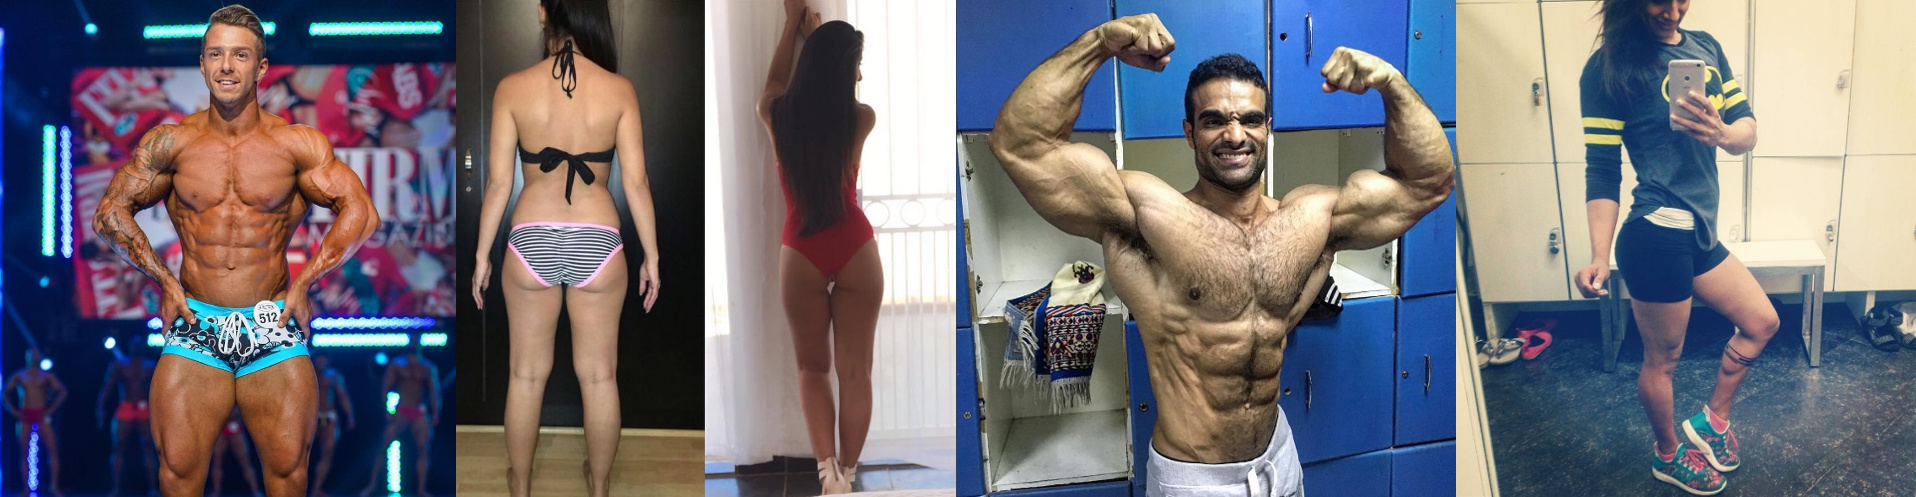 14 Fit, Motivational Instagram Posts From Around The Web! 5th Edition